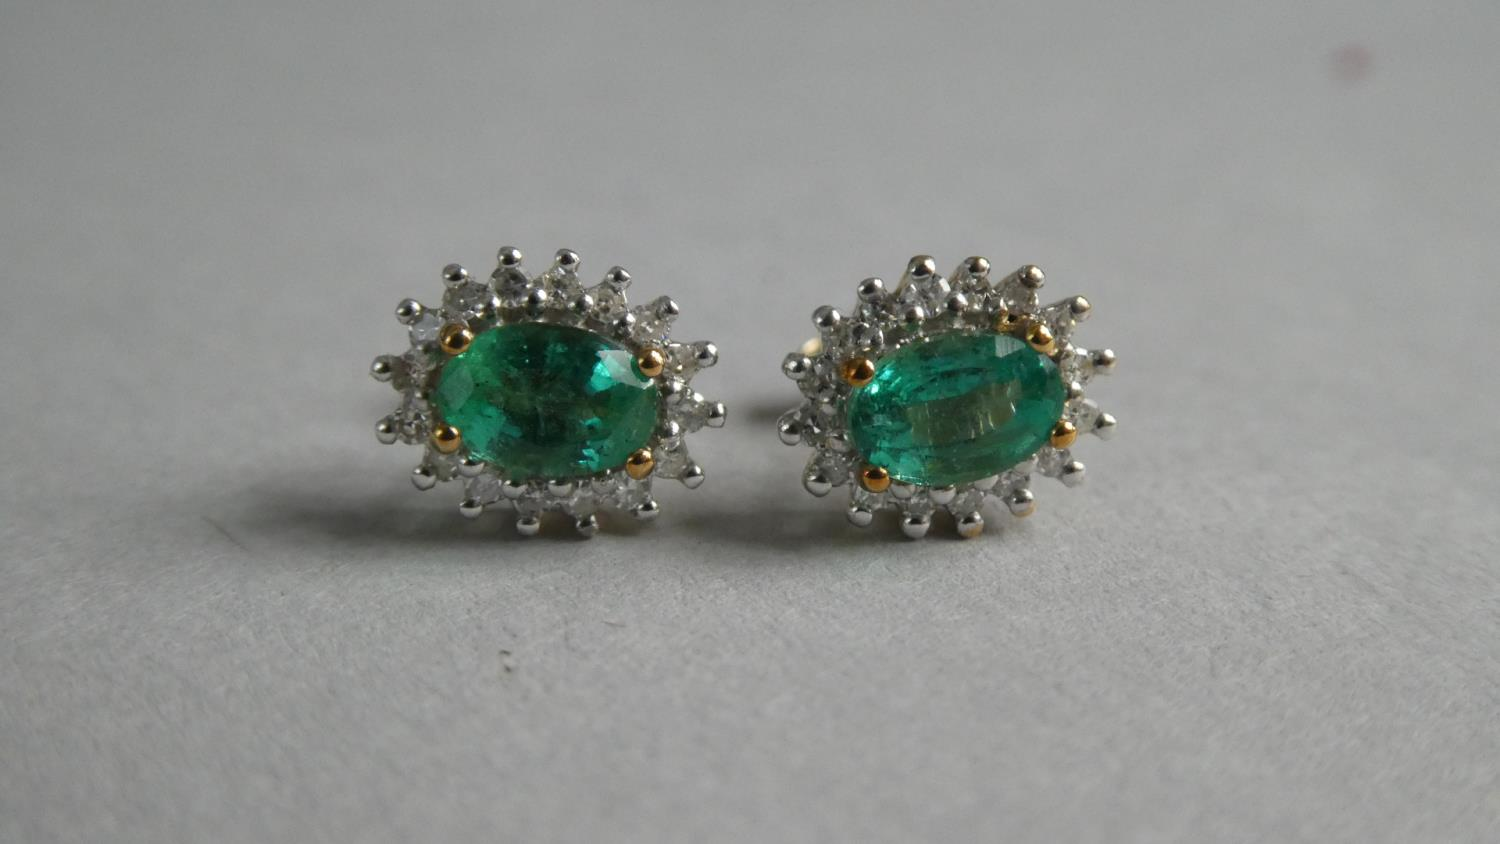 Lot 337 - A Pair of Emerald and Diamond Stud Earrings. Cushion Cut Emeralds 6mmx4mm.